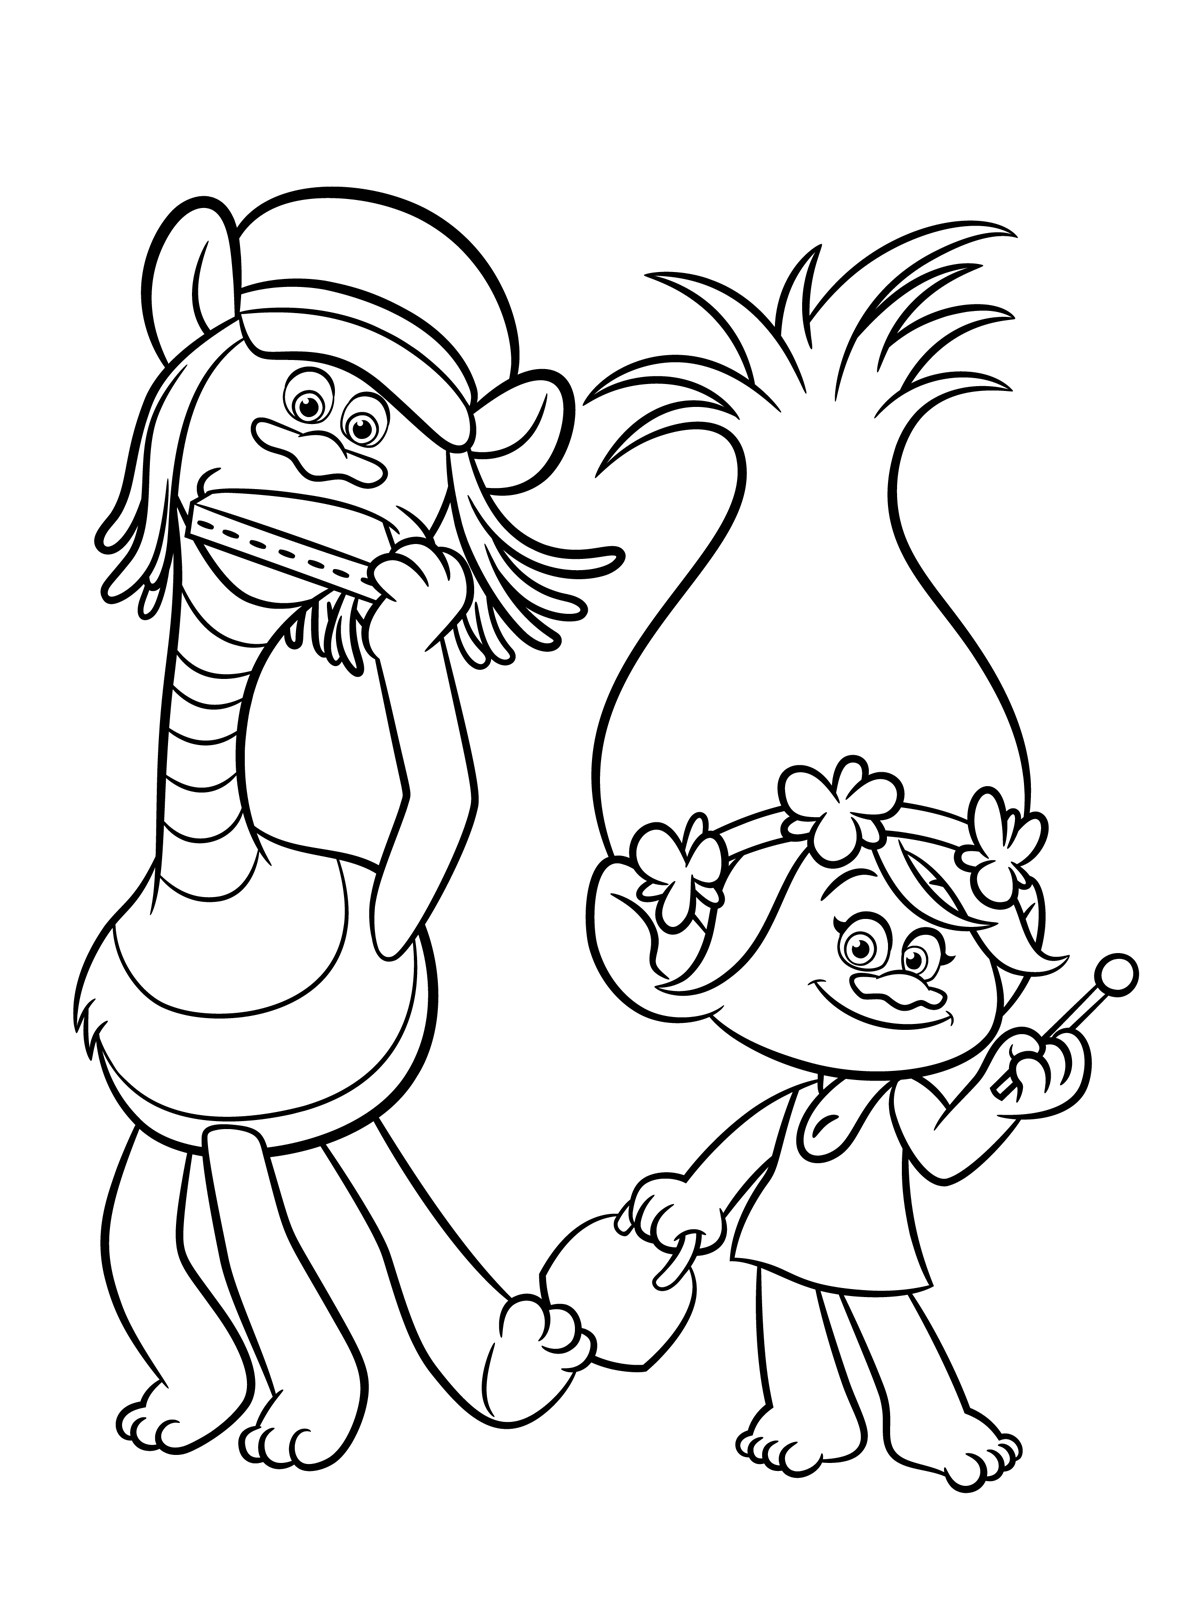 1200x1600 Trolls Coloring Pages To Download And Print For Free Showy